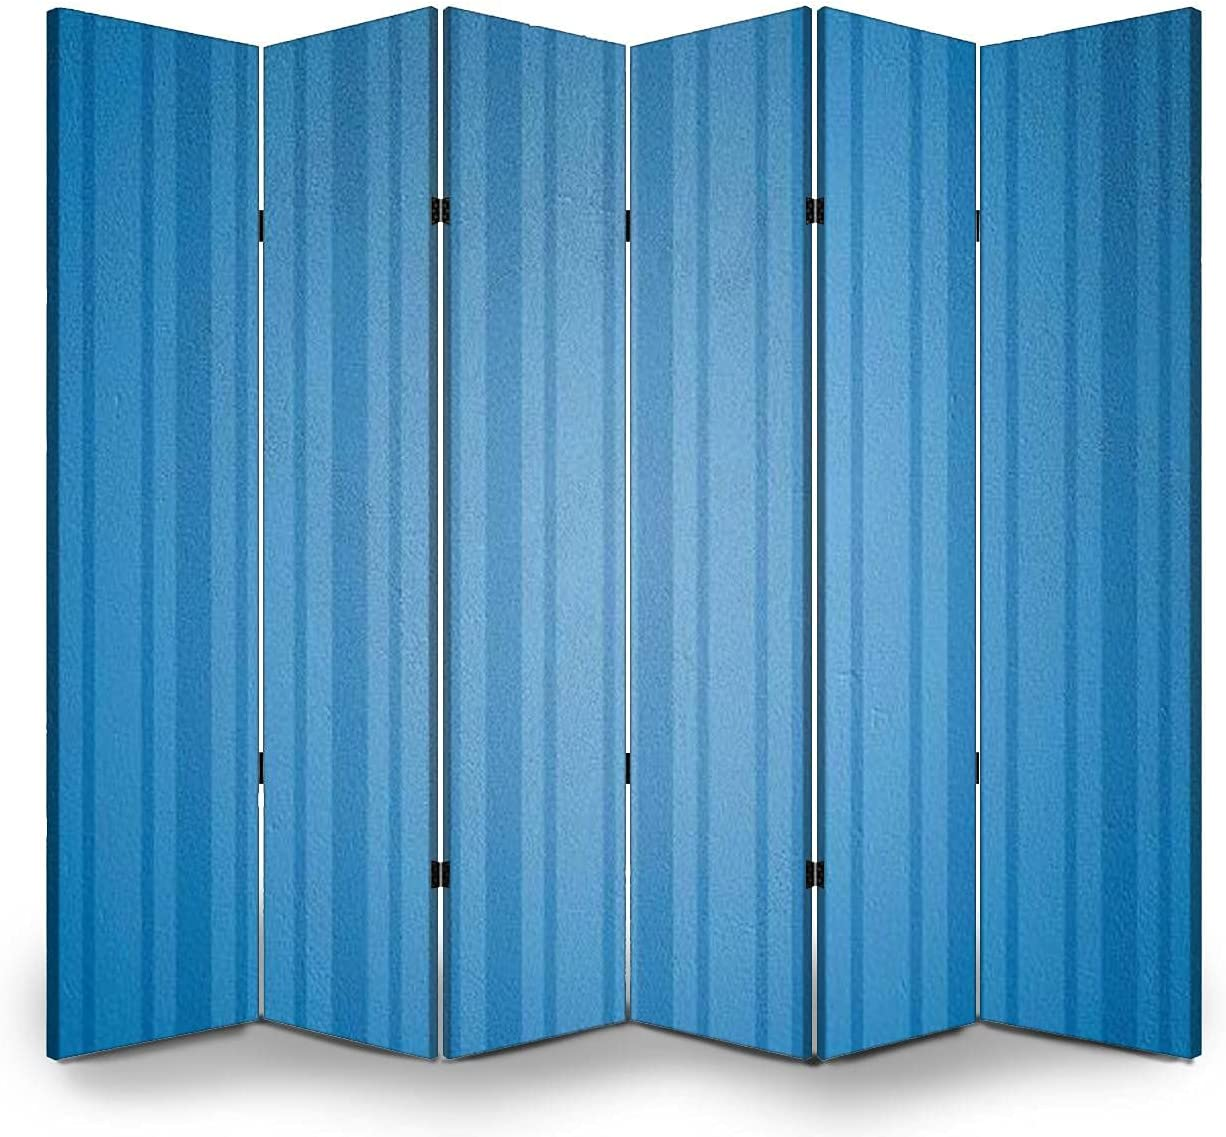 6 Panels Room Divider Fashionable Screen Background Super-cheap Folding Partition Wall P